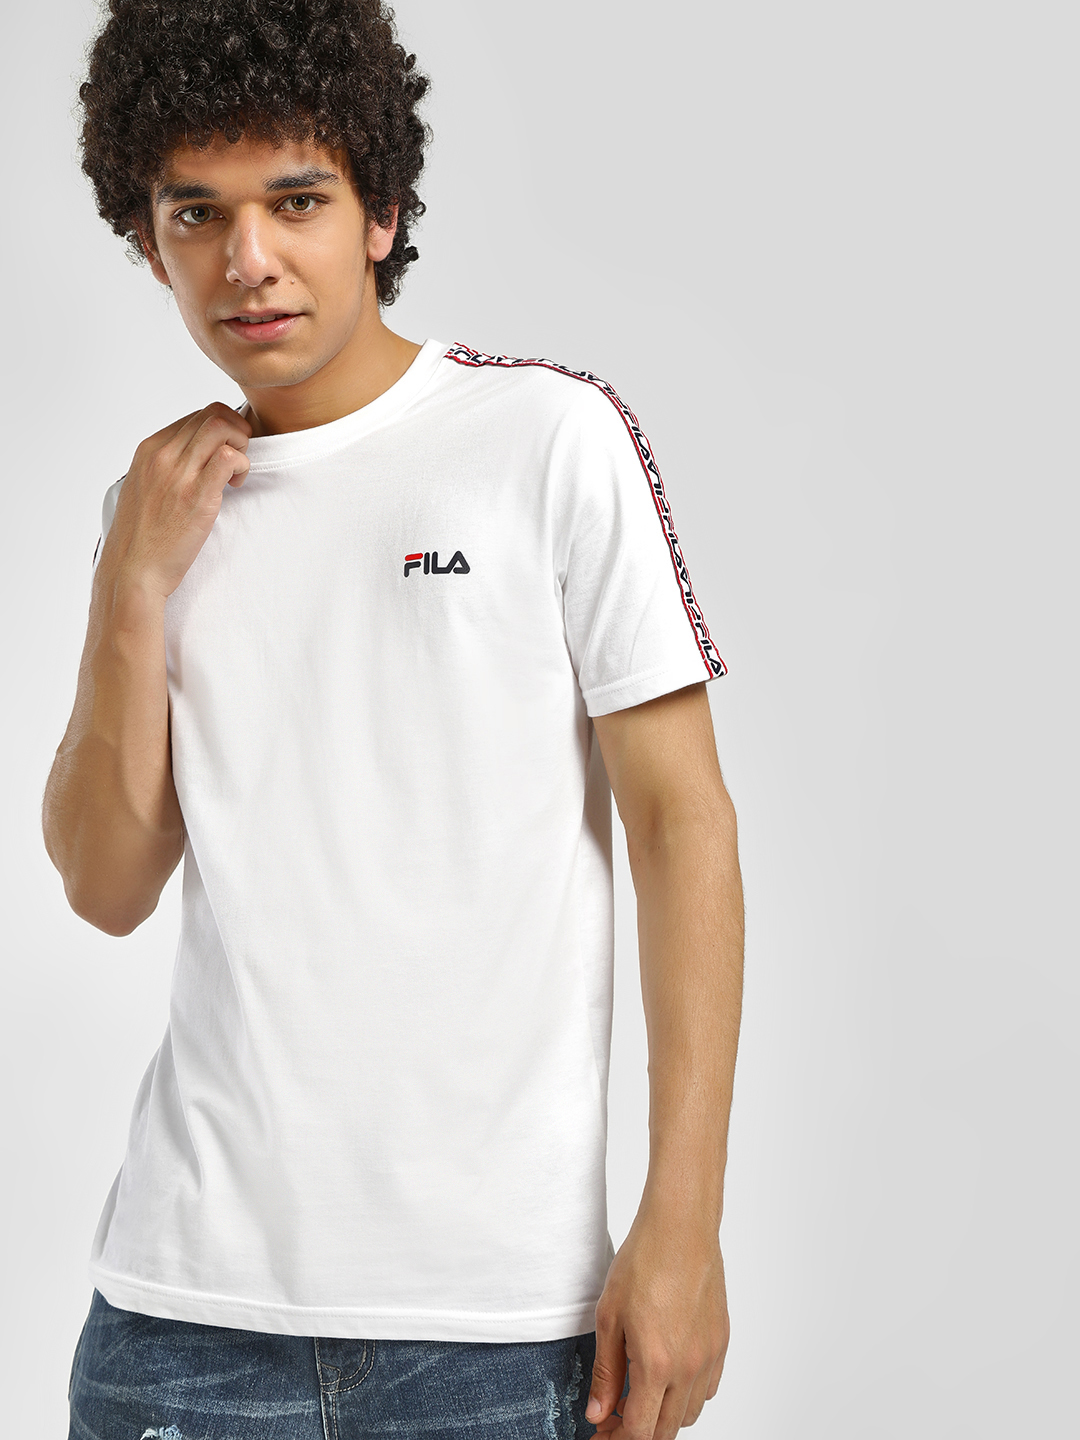 Fila White Slogan Tape T-Shirt 1